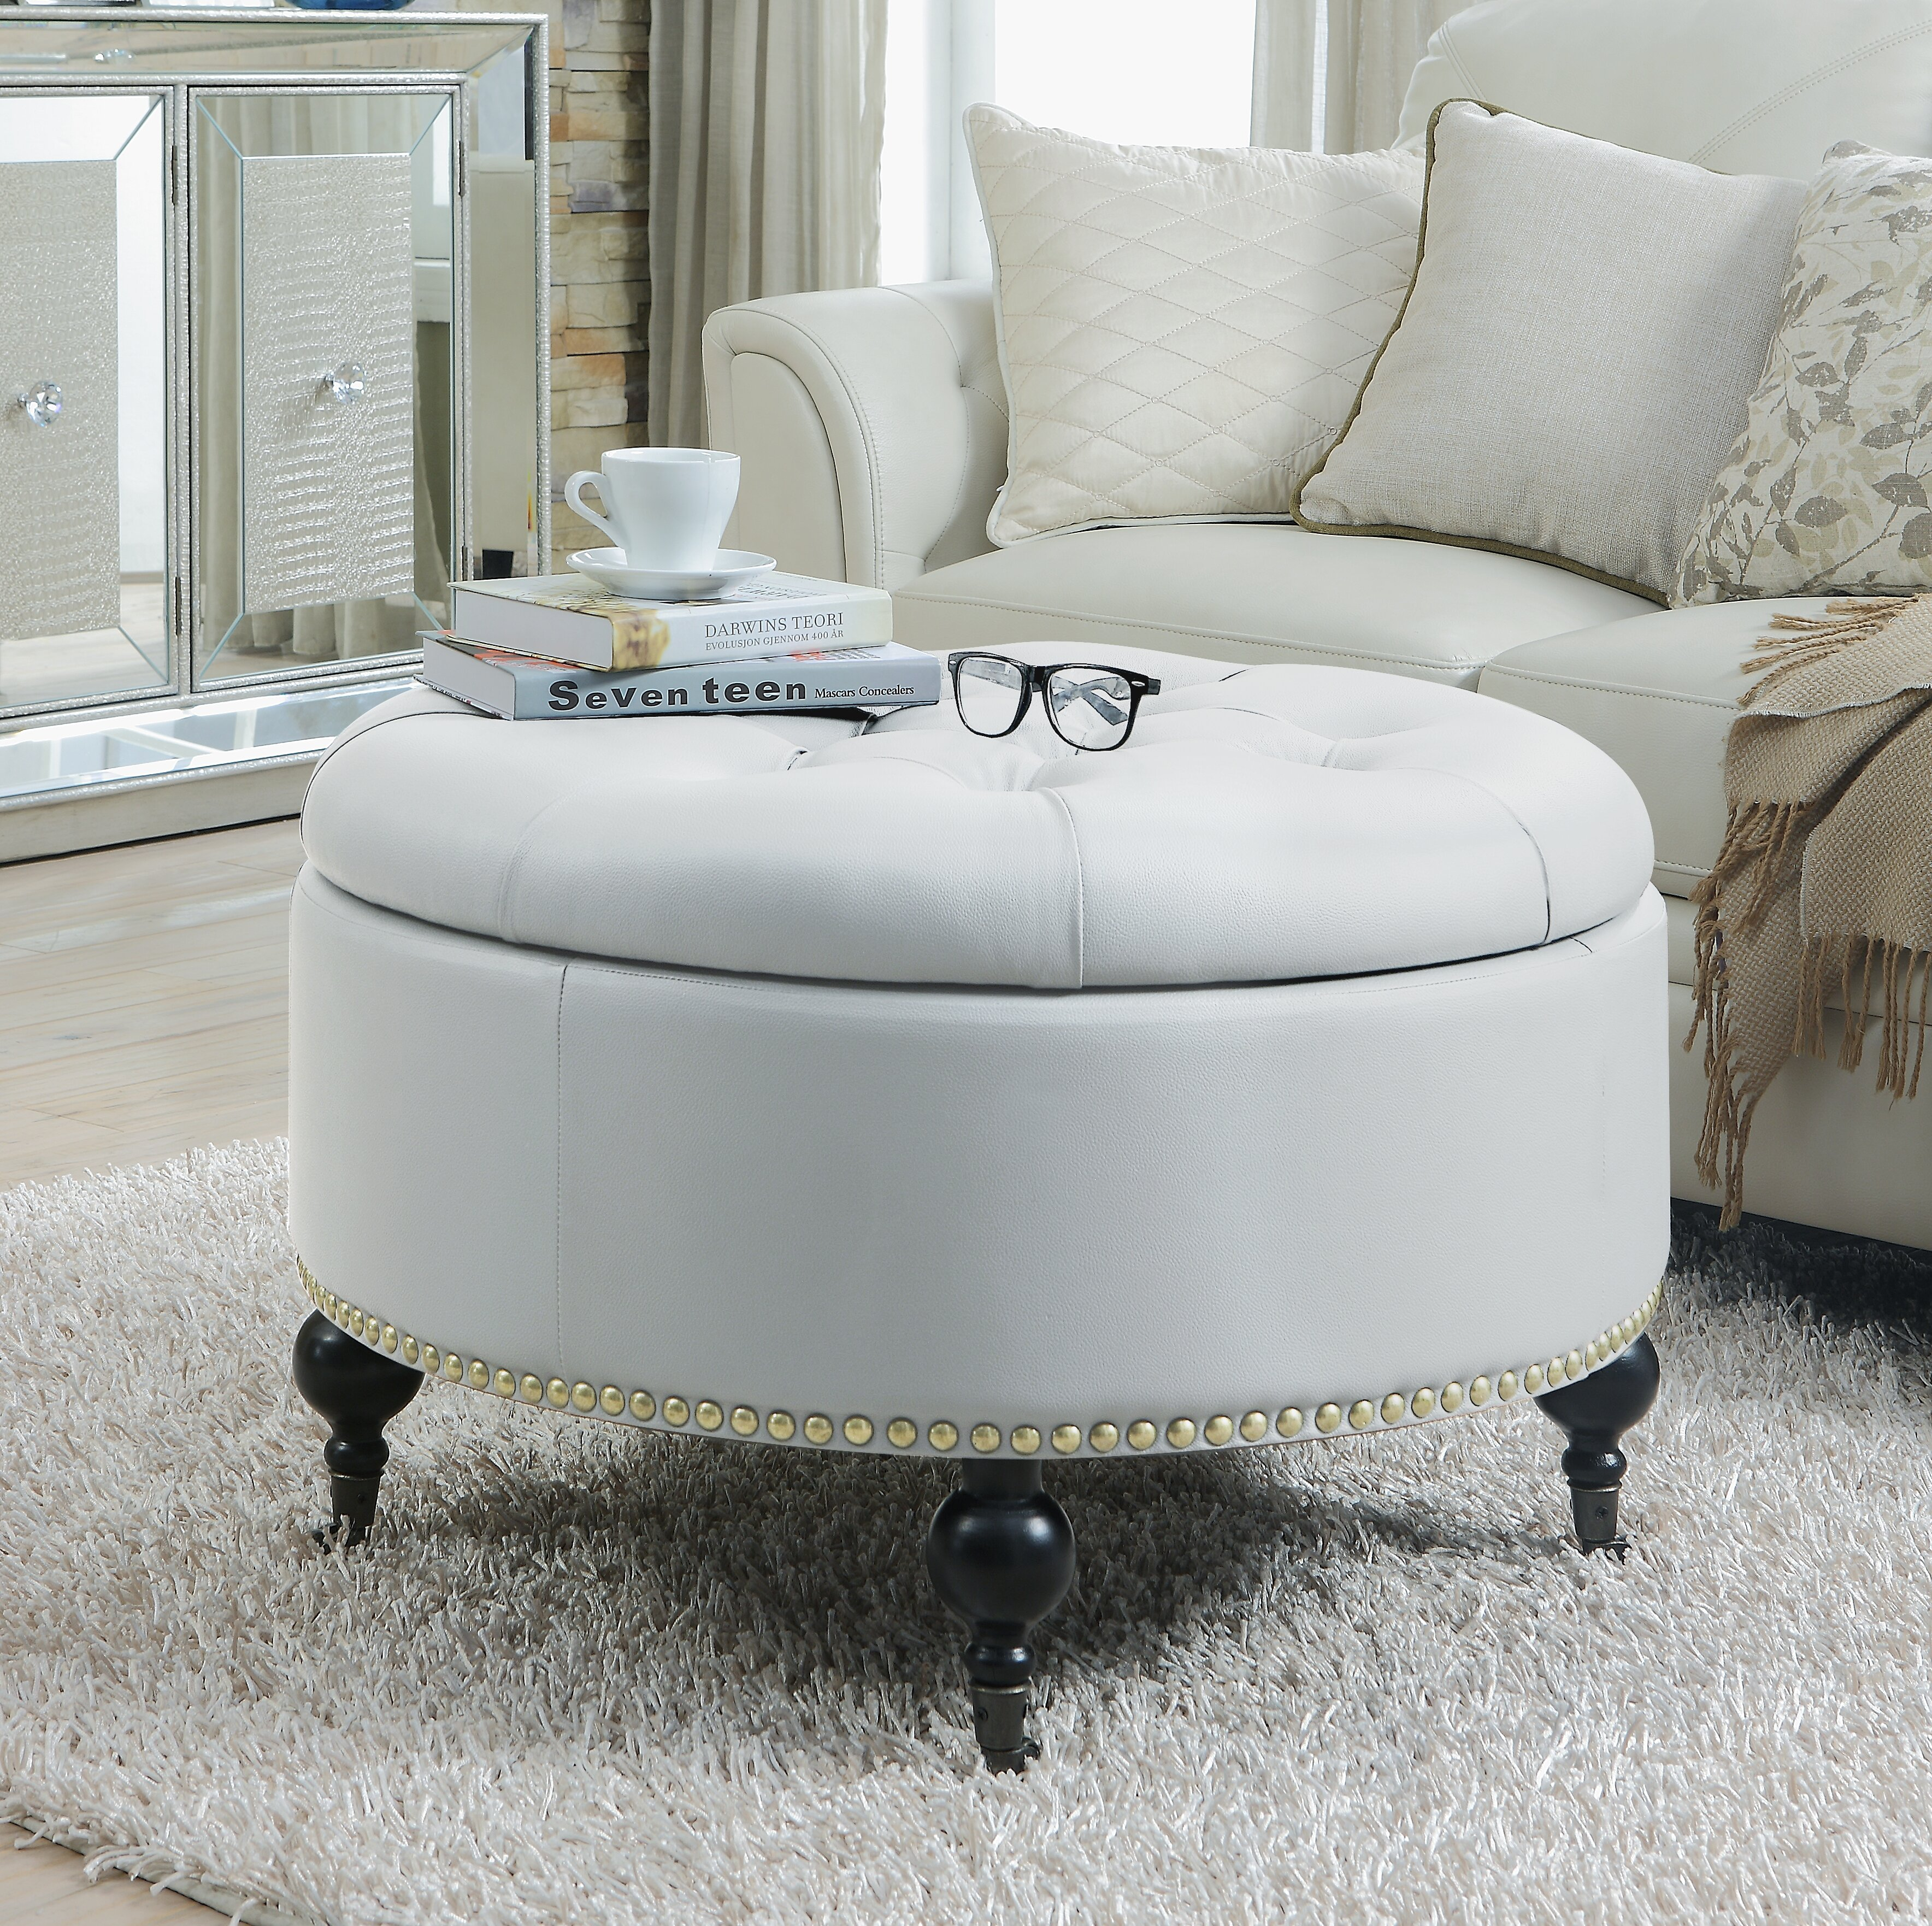 Surprising Letitia Round Storage Ottoman Pabps2019 Chair Design Images Pabps2019Com